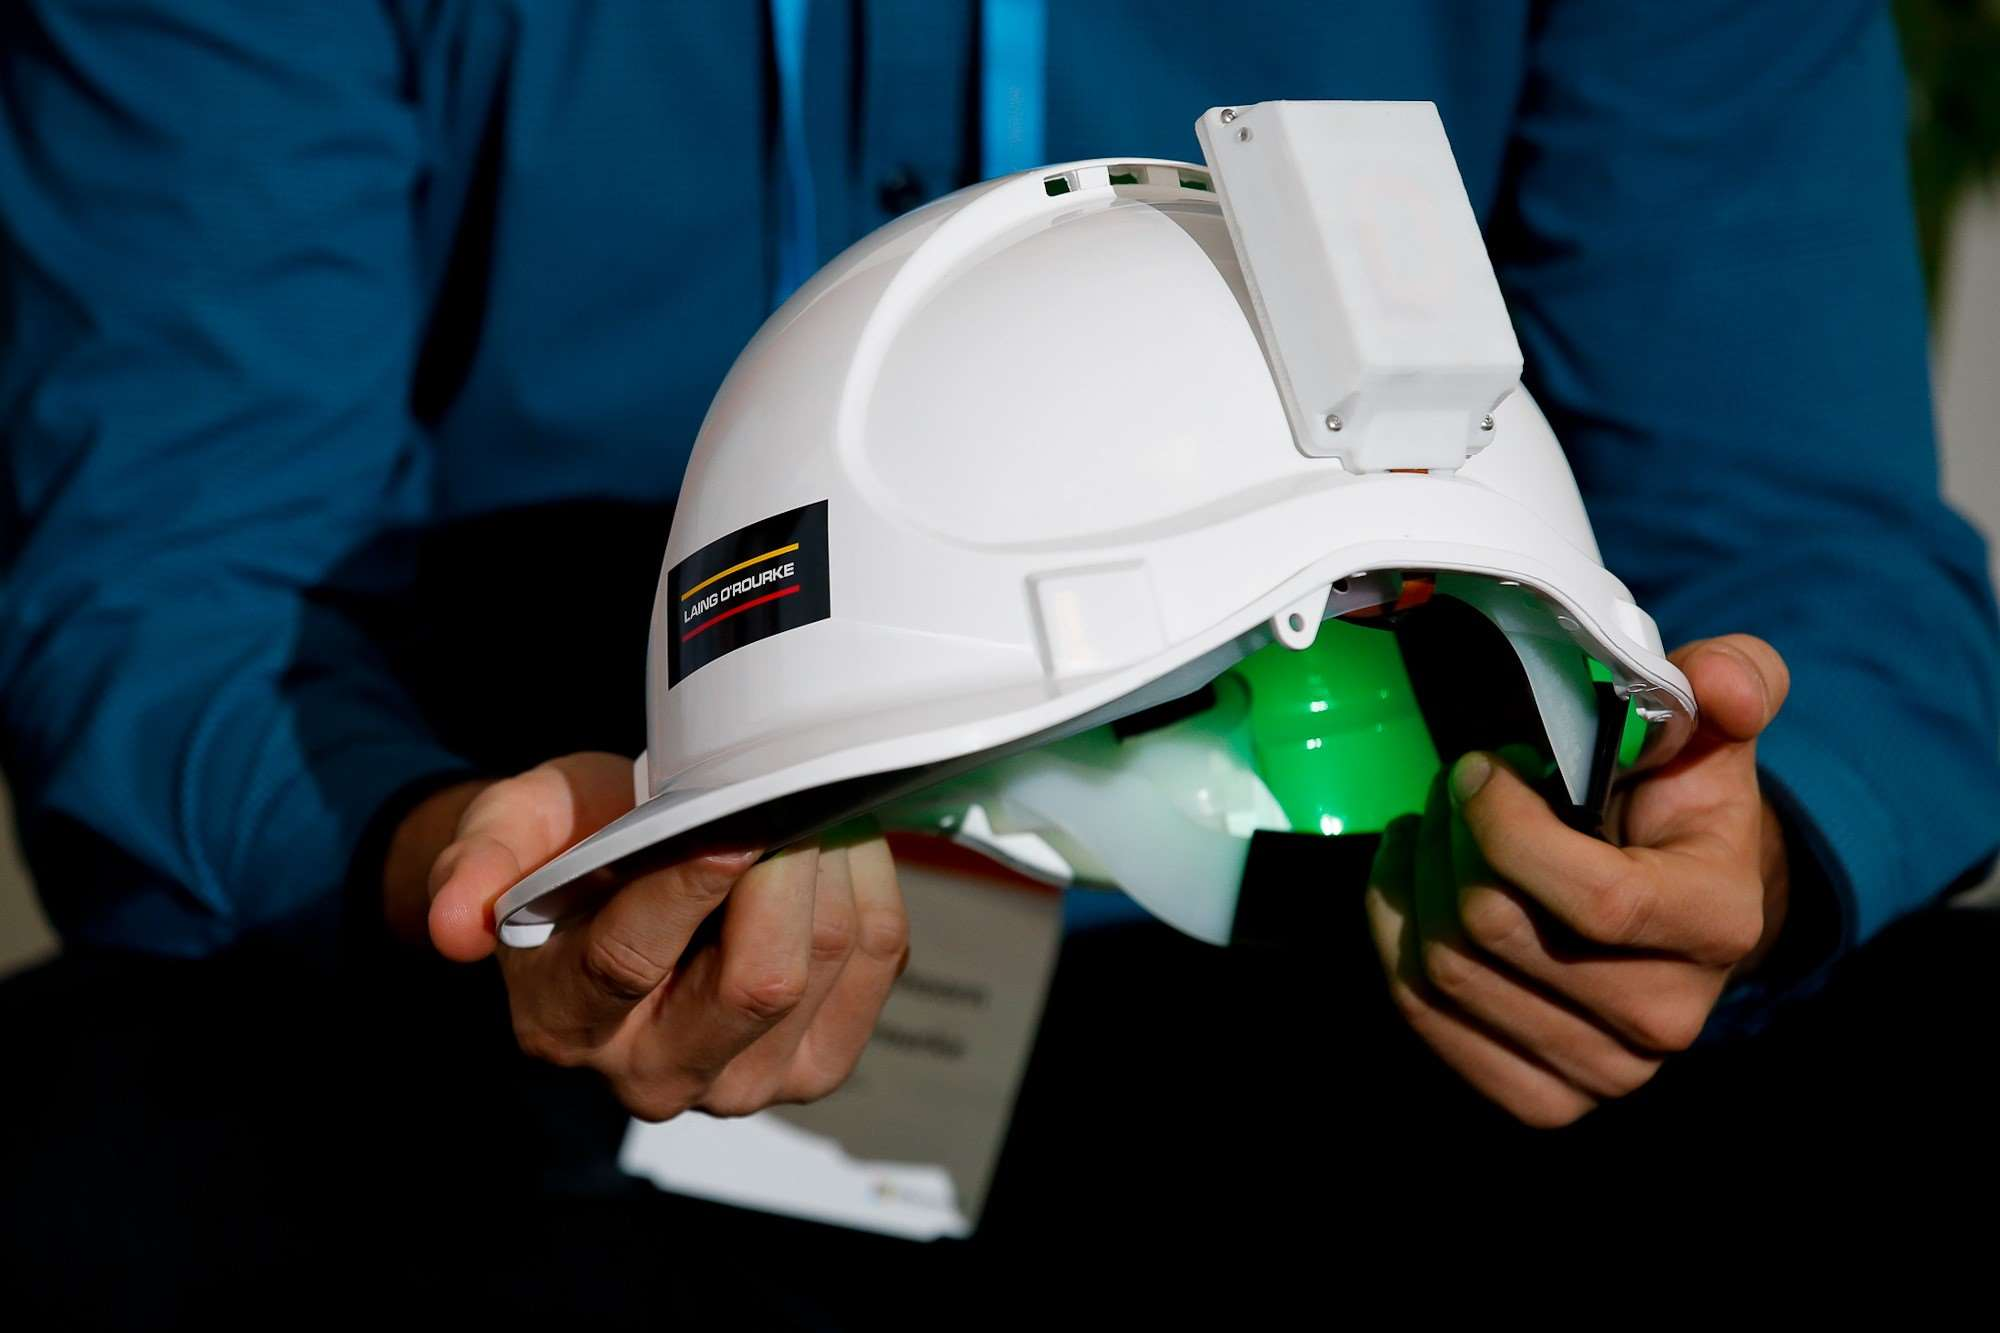 Laing O Rourke Brings Iot To Hard Hats Features Iot Hub